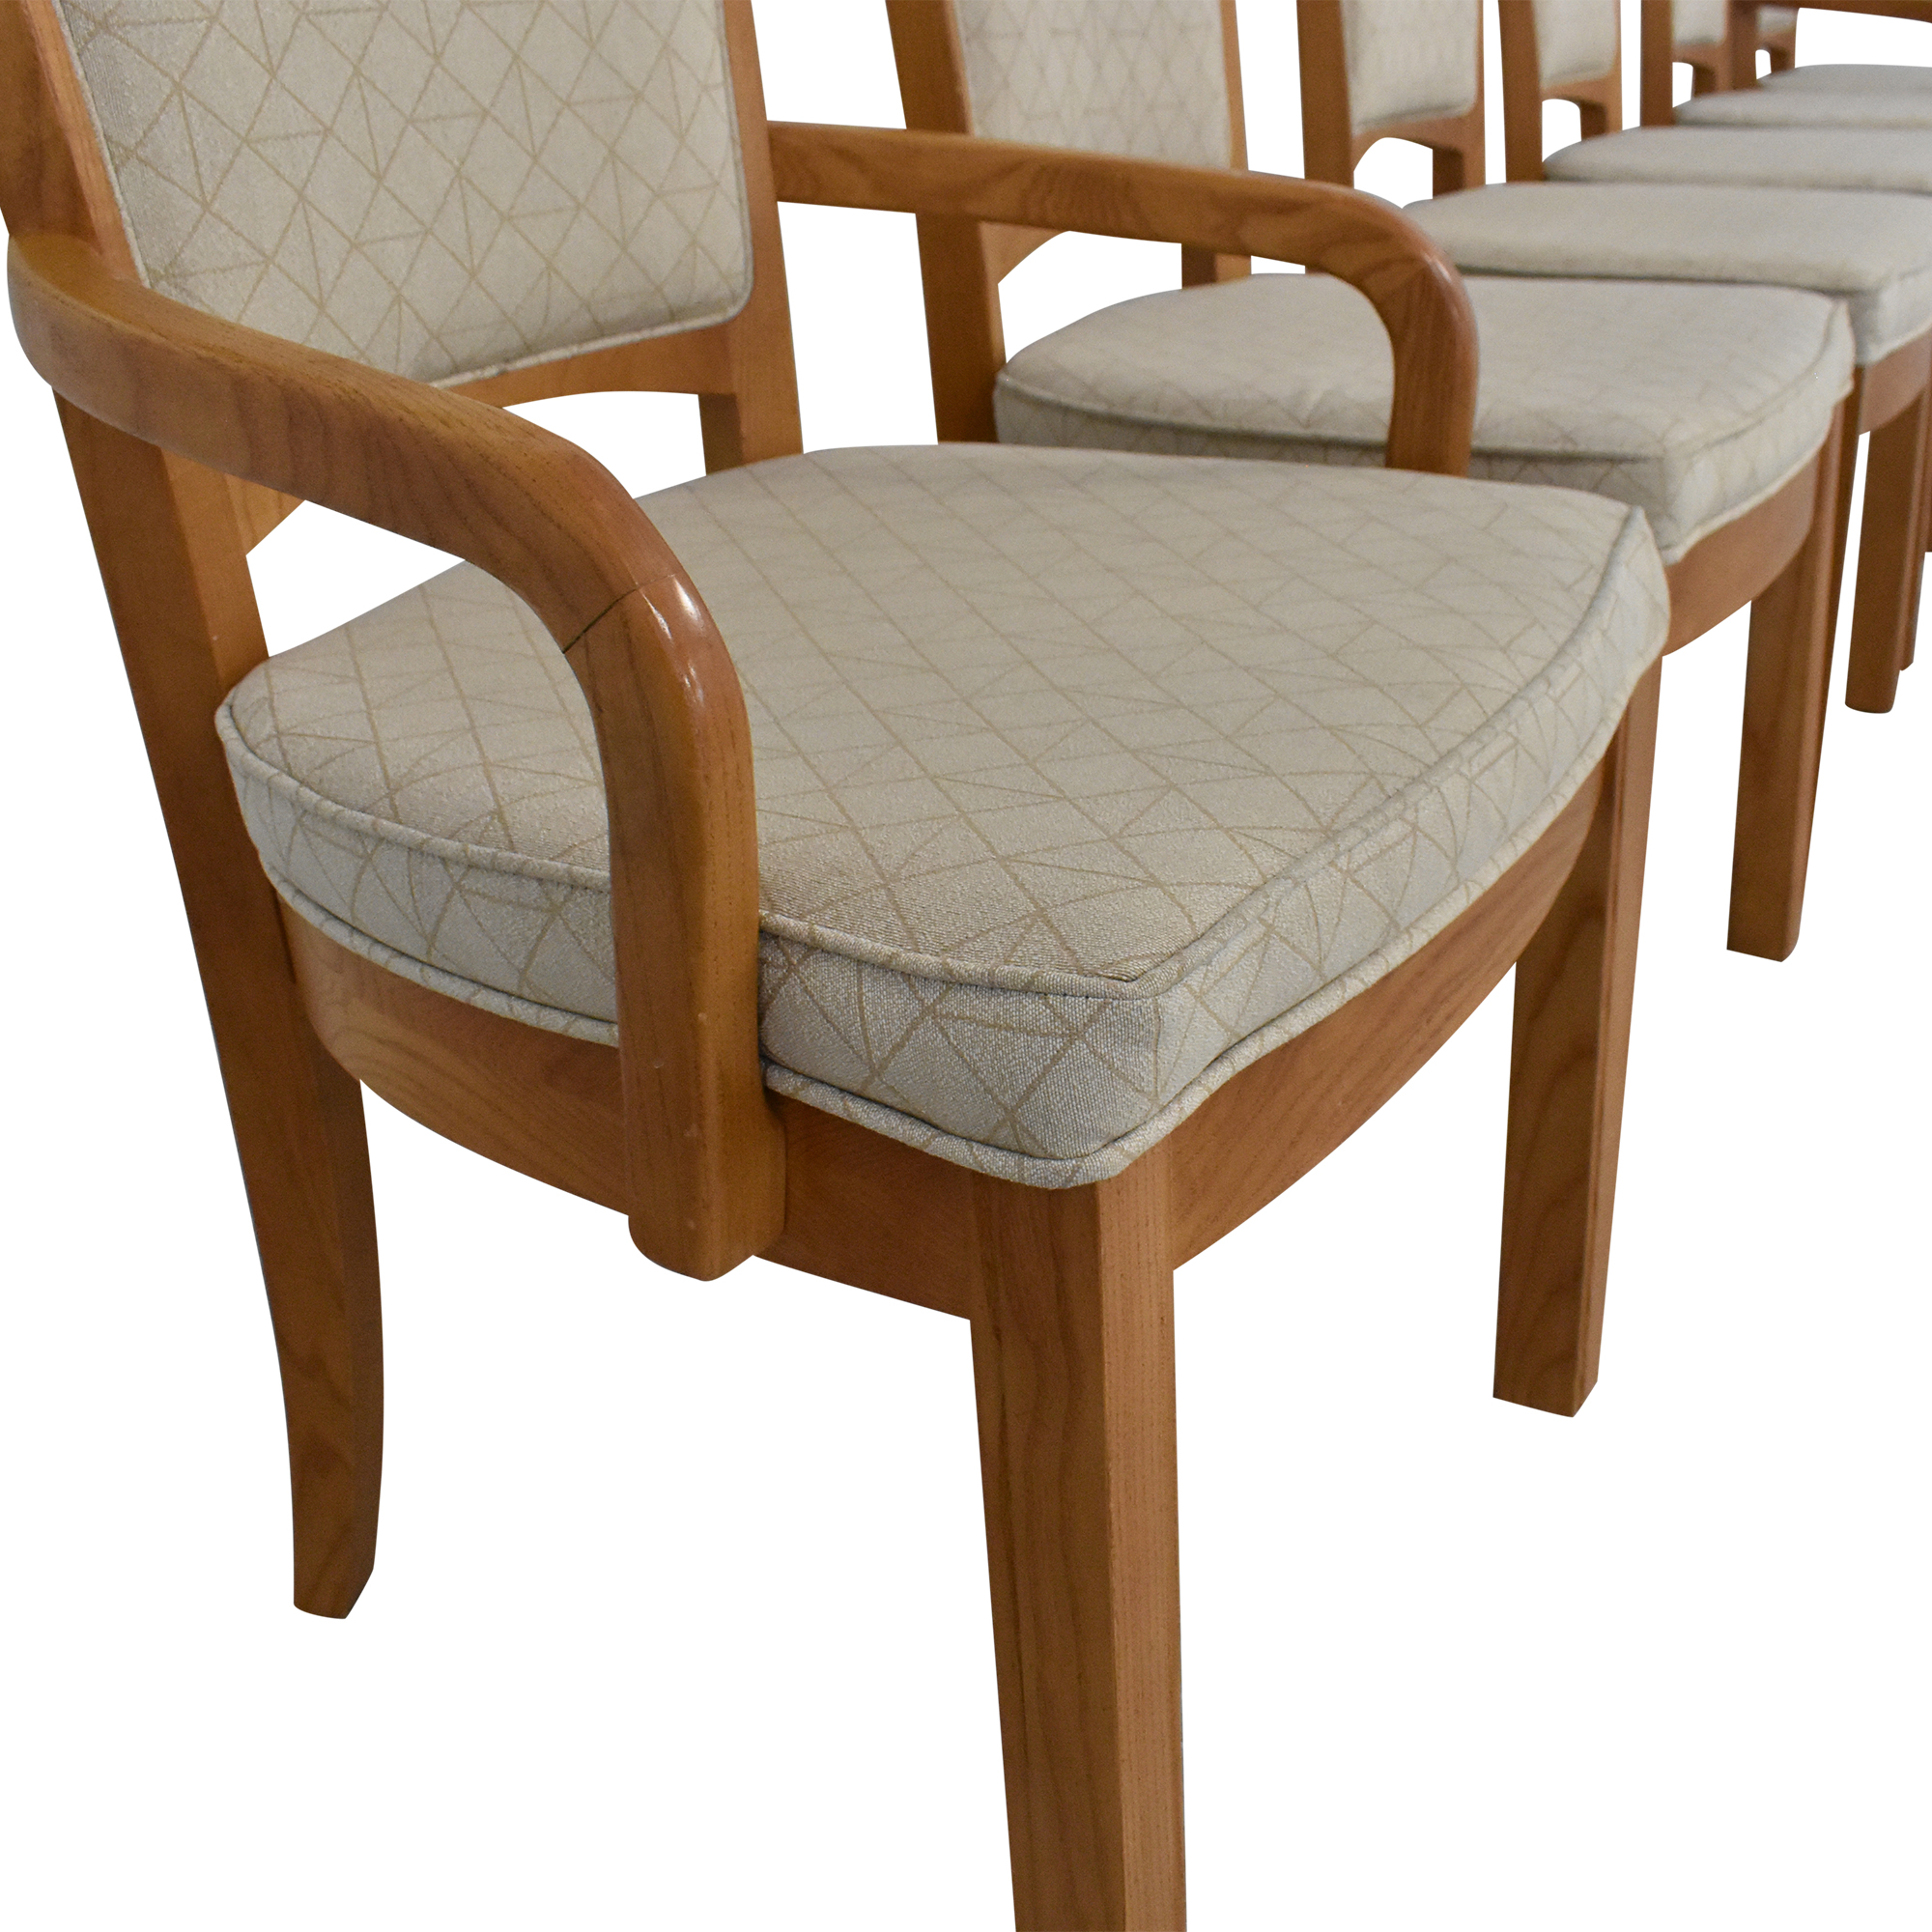 Stanley Furniture Stanley Upholstered Dining Chairs used